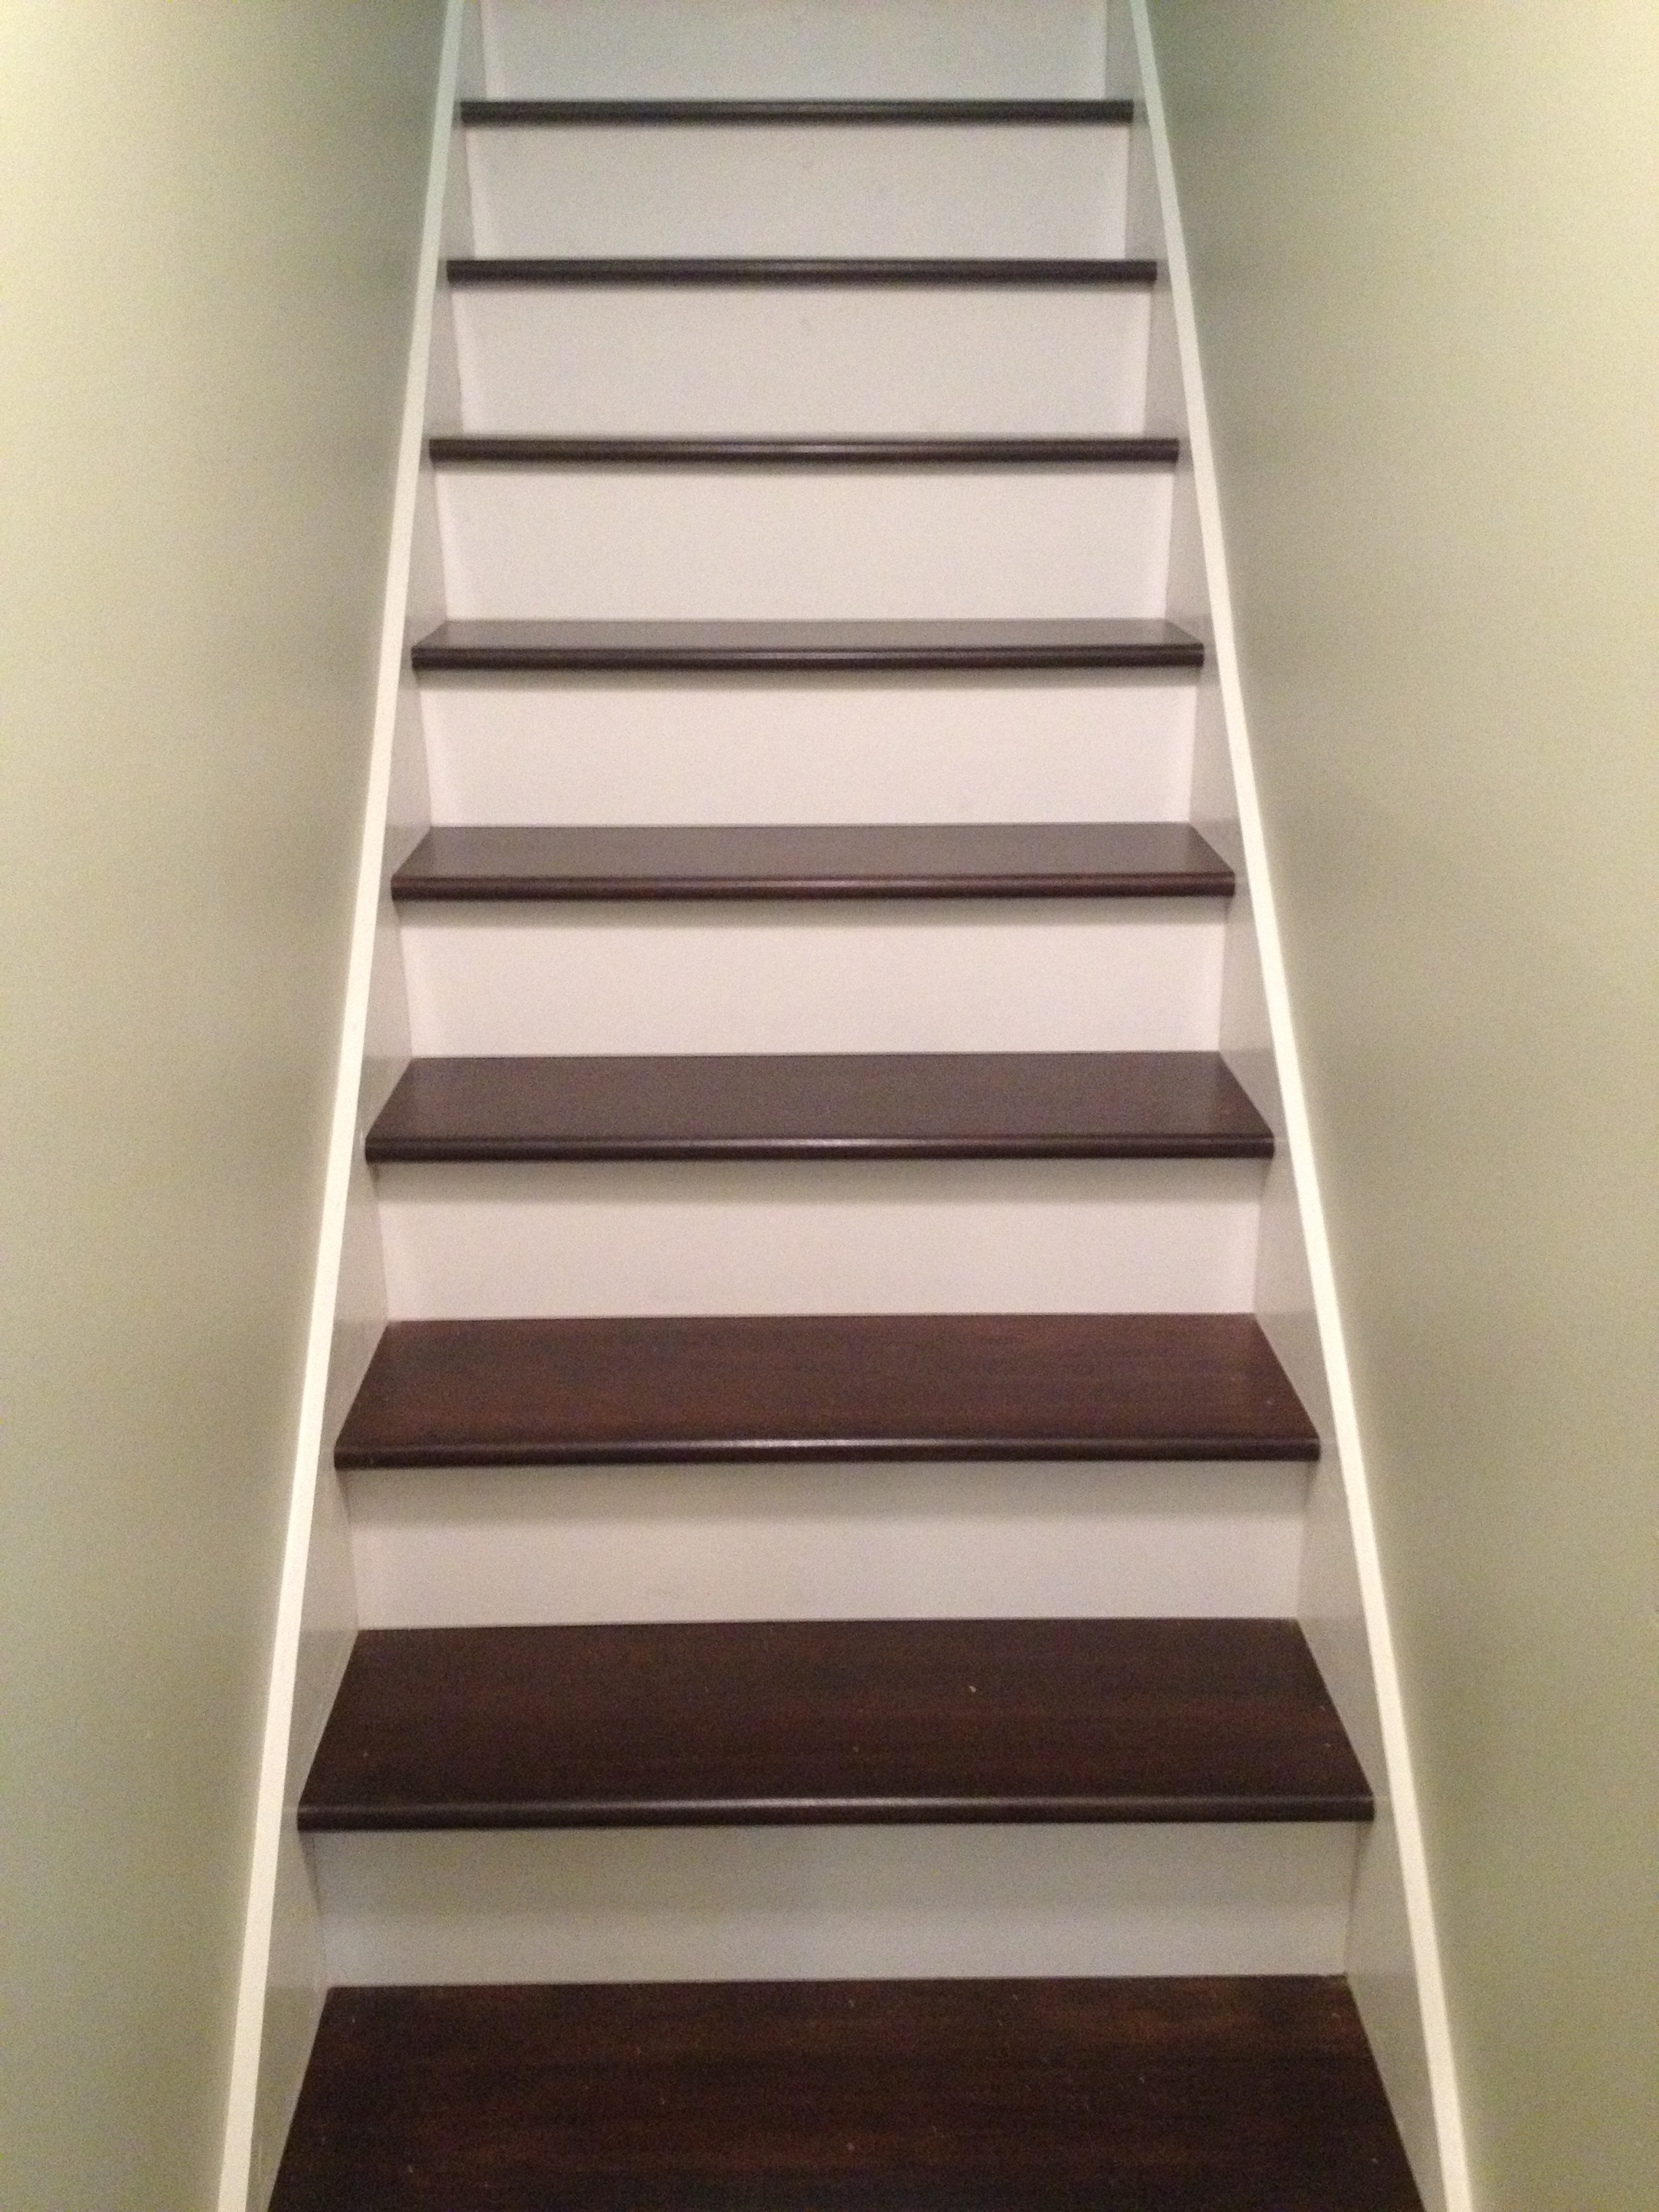 Wooden Stairs Battle Creek Tile Amp Mosaic Co Inc